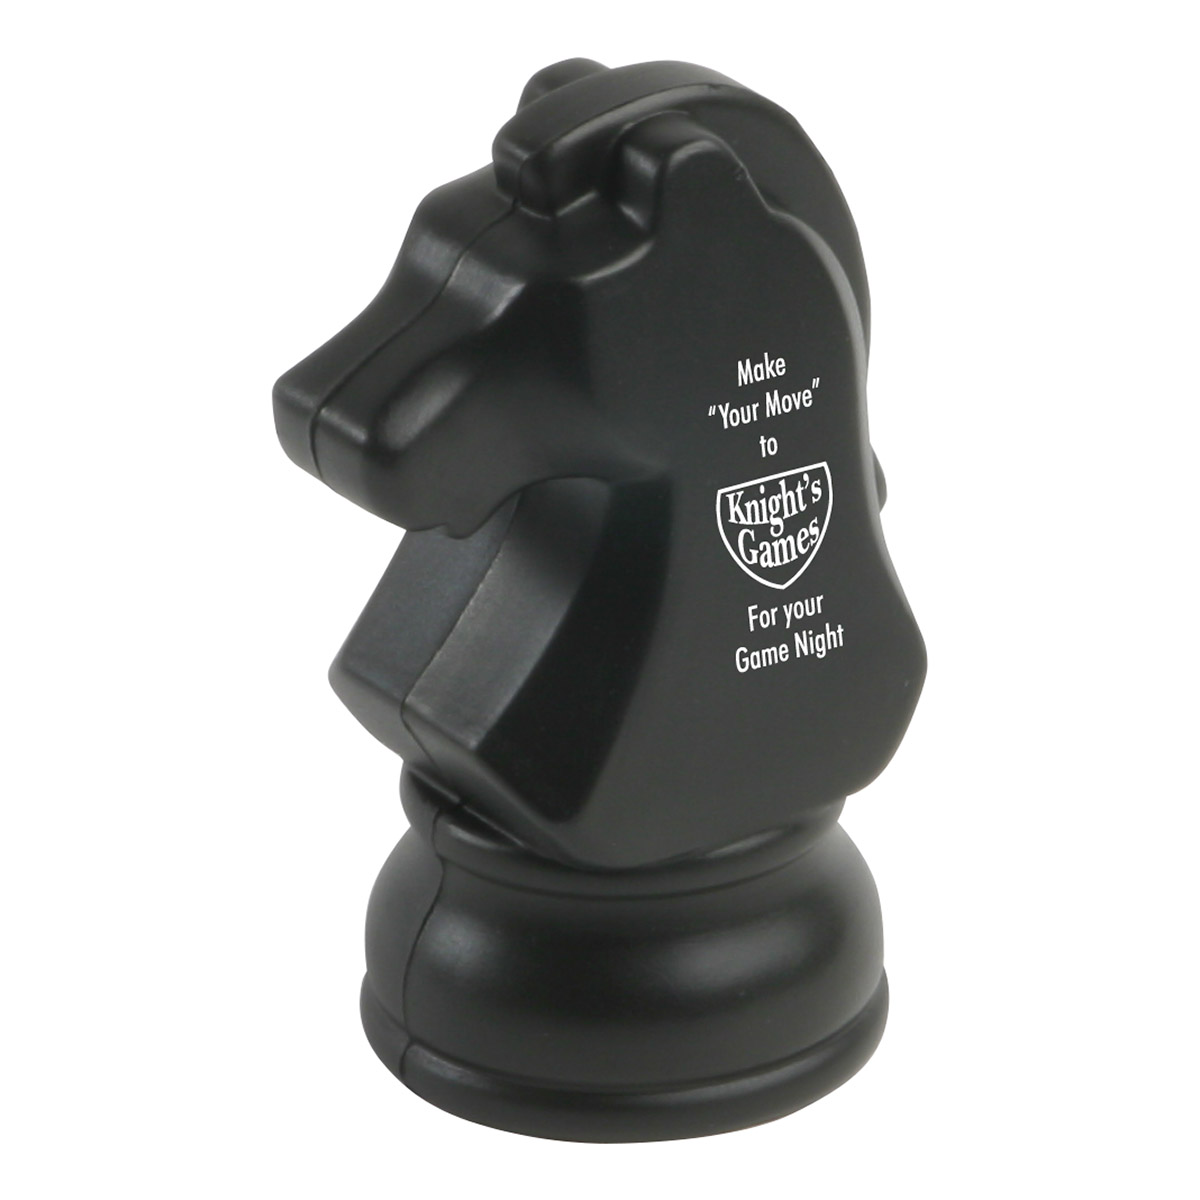 Knight Chess Piece Stress Reliever, LGS-CP07 - 1 Colour Imprint